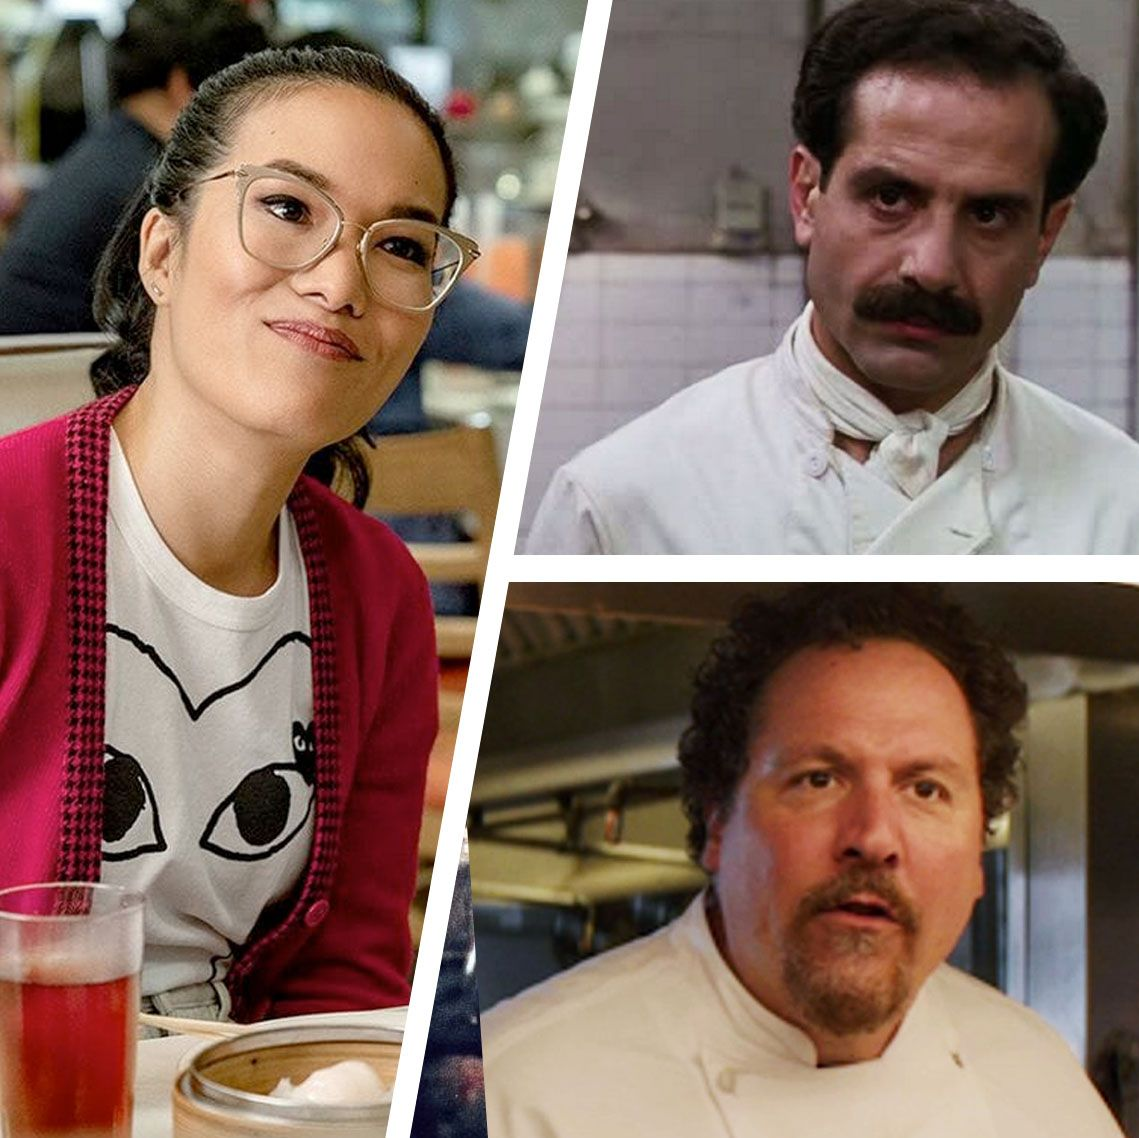 Ranking Chef Movies Based On The Food